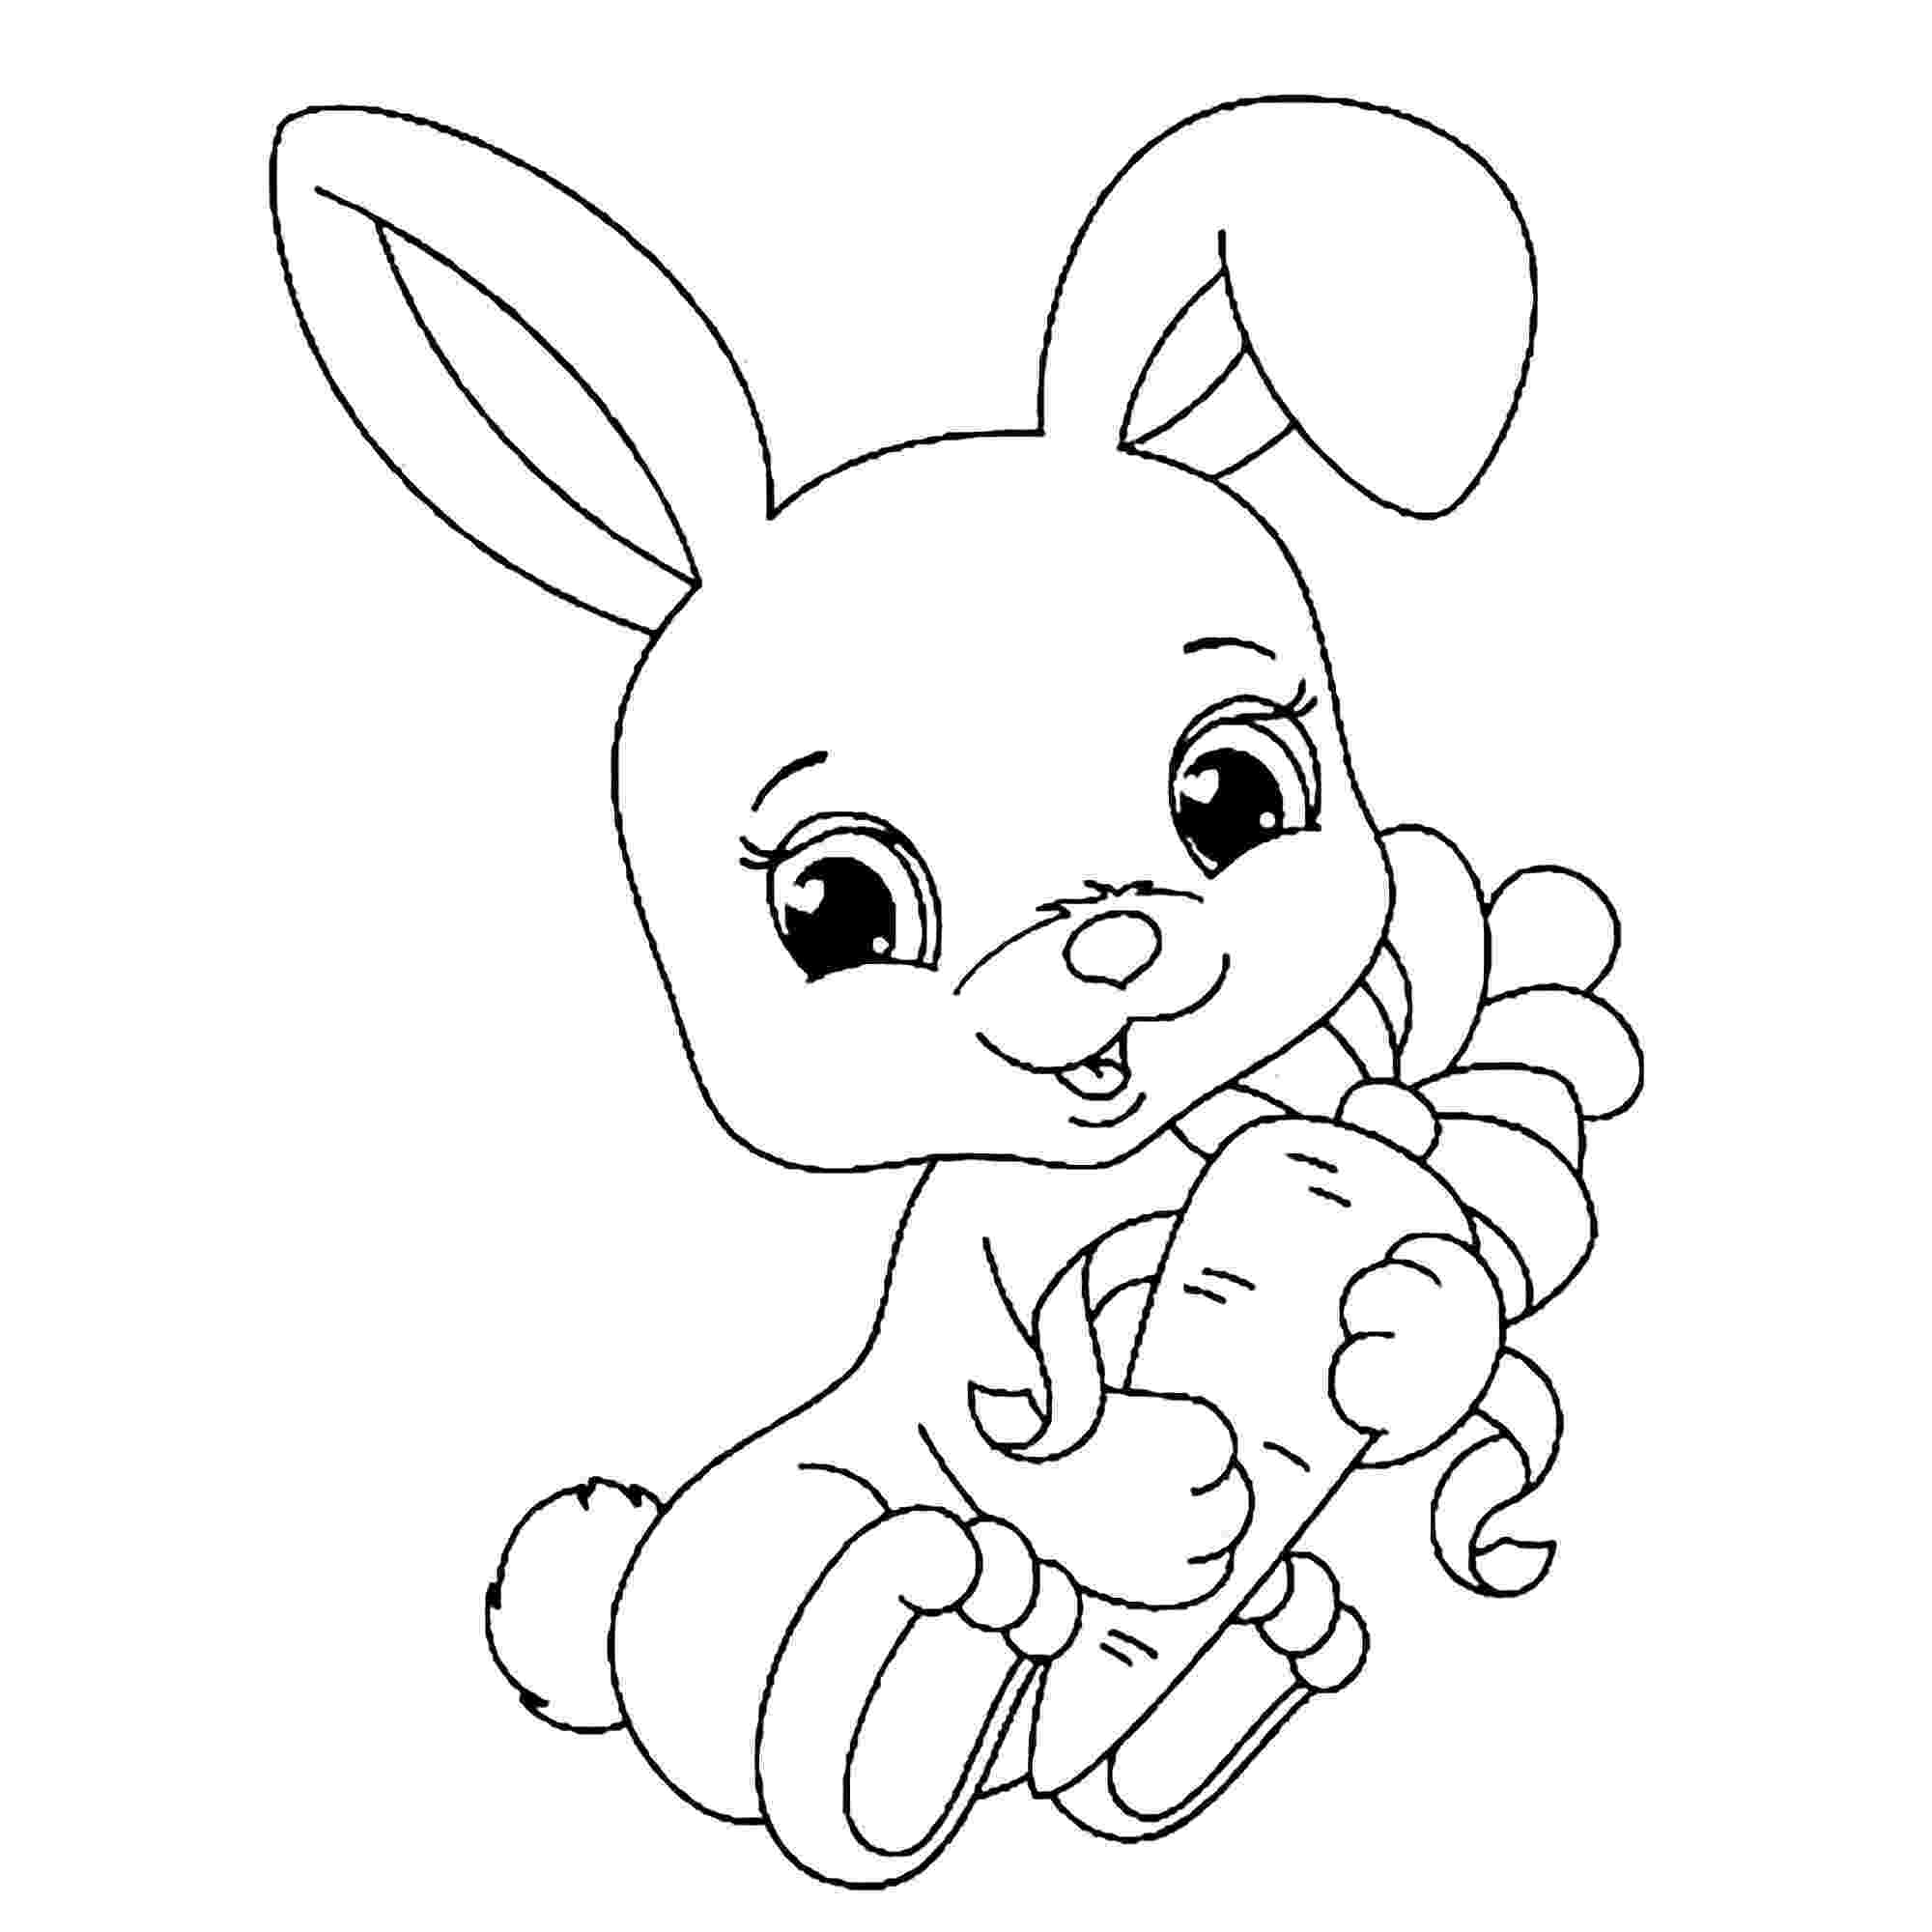 colouring page rabbit rabbit free to color for children rabbit kids coloring pages page rabbit colouring